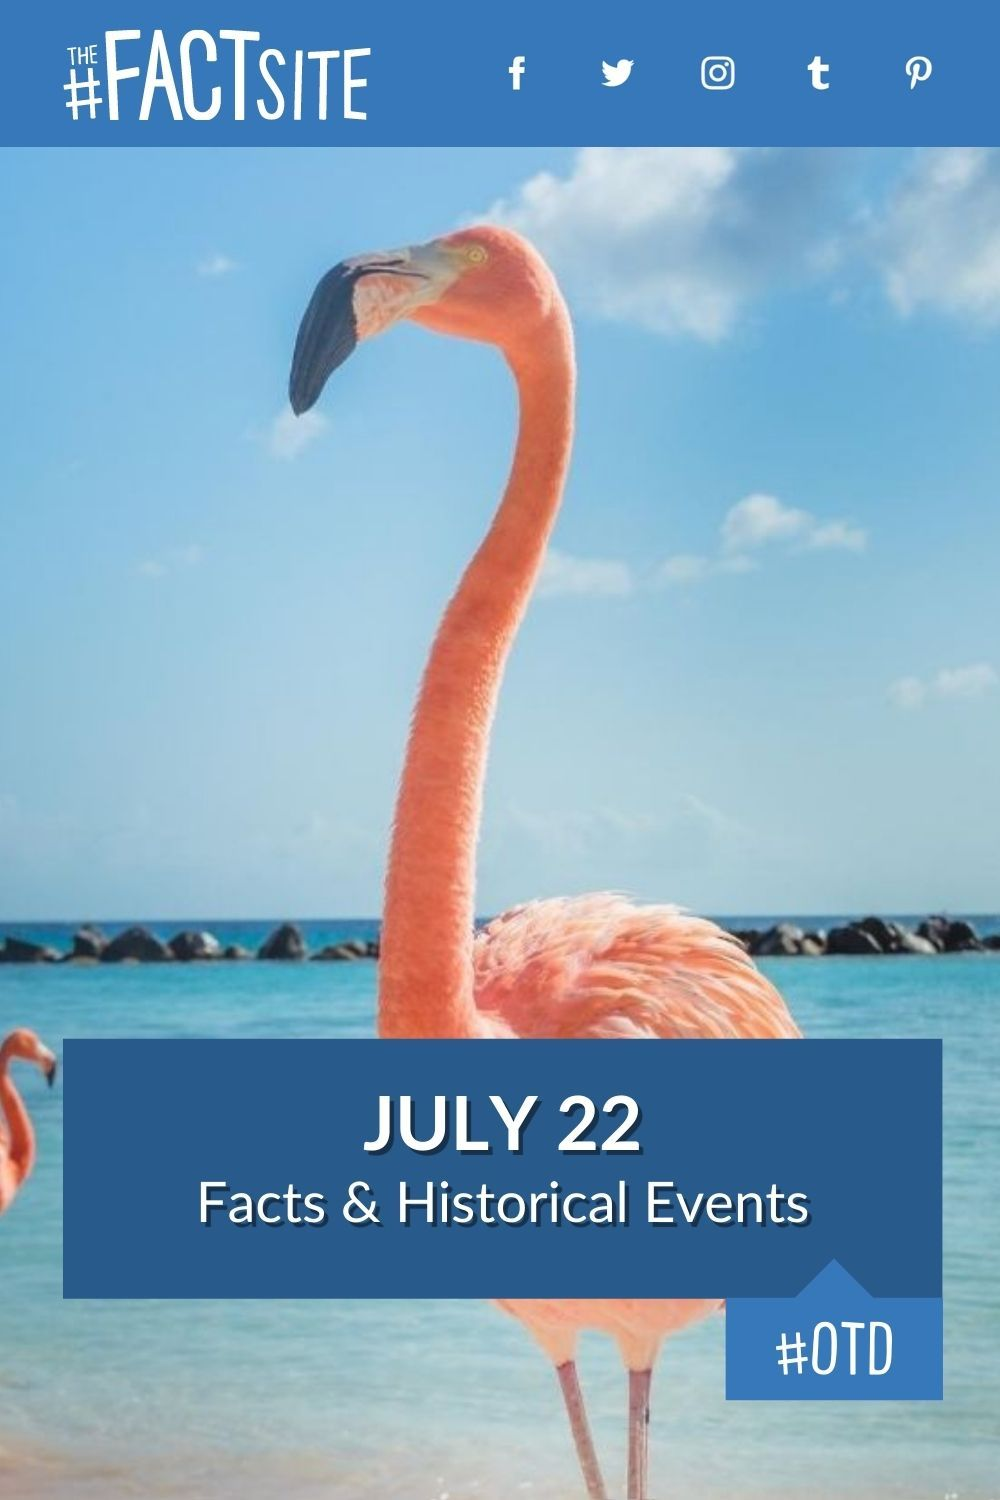 Facts & Historic Events That Happened on July 22